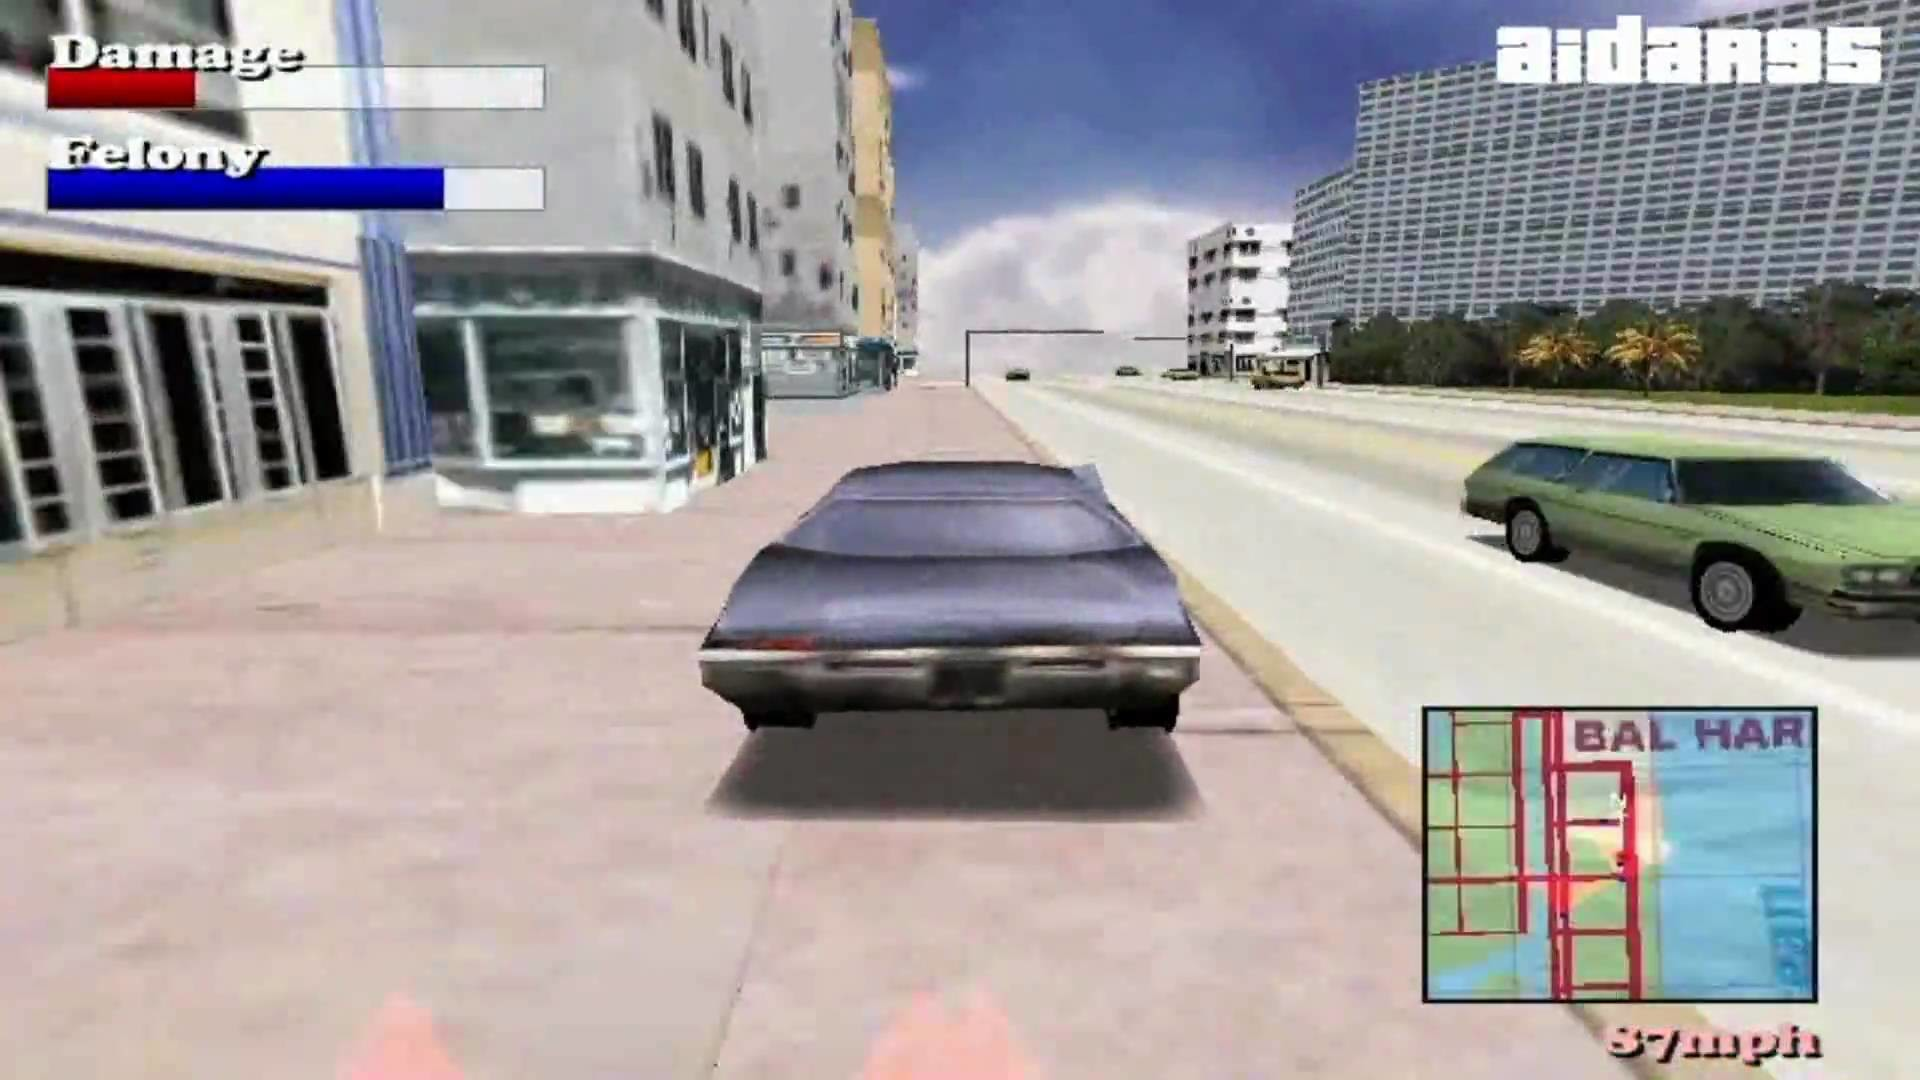 Neowingaming Revisiting Driver The Wannabe Grand Theft Auto